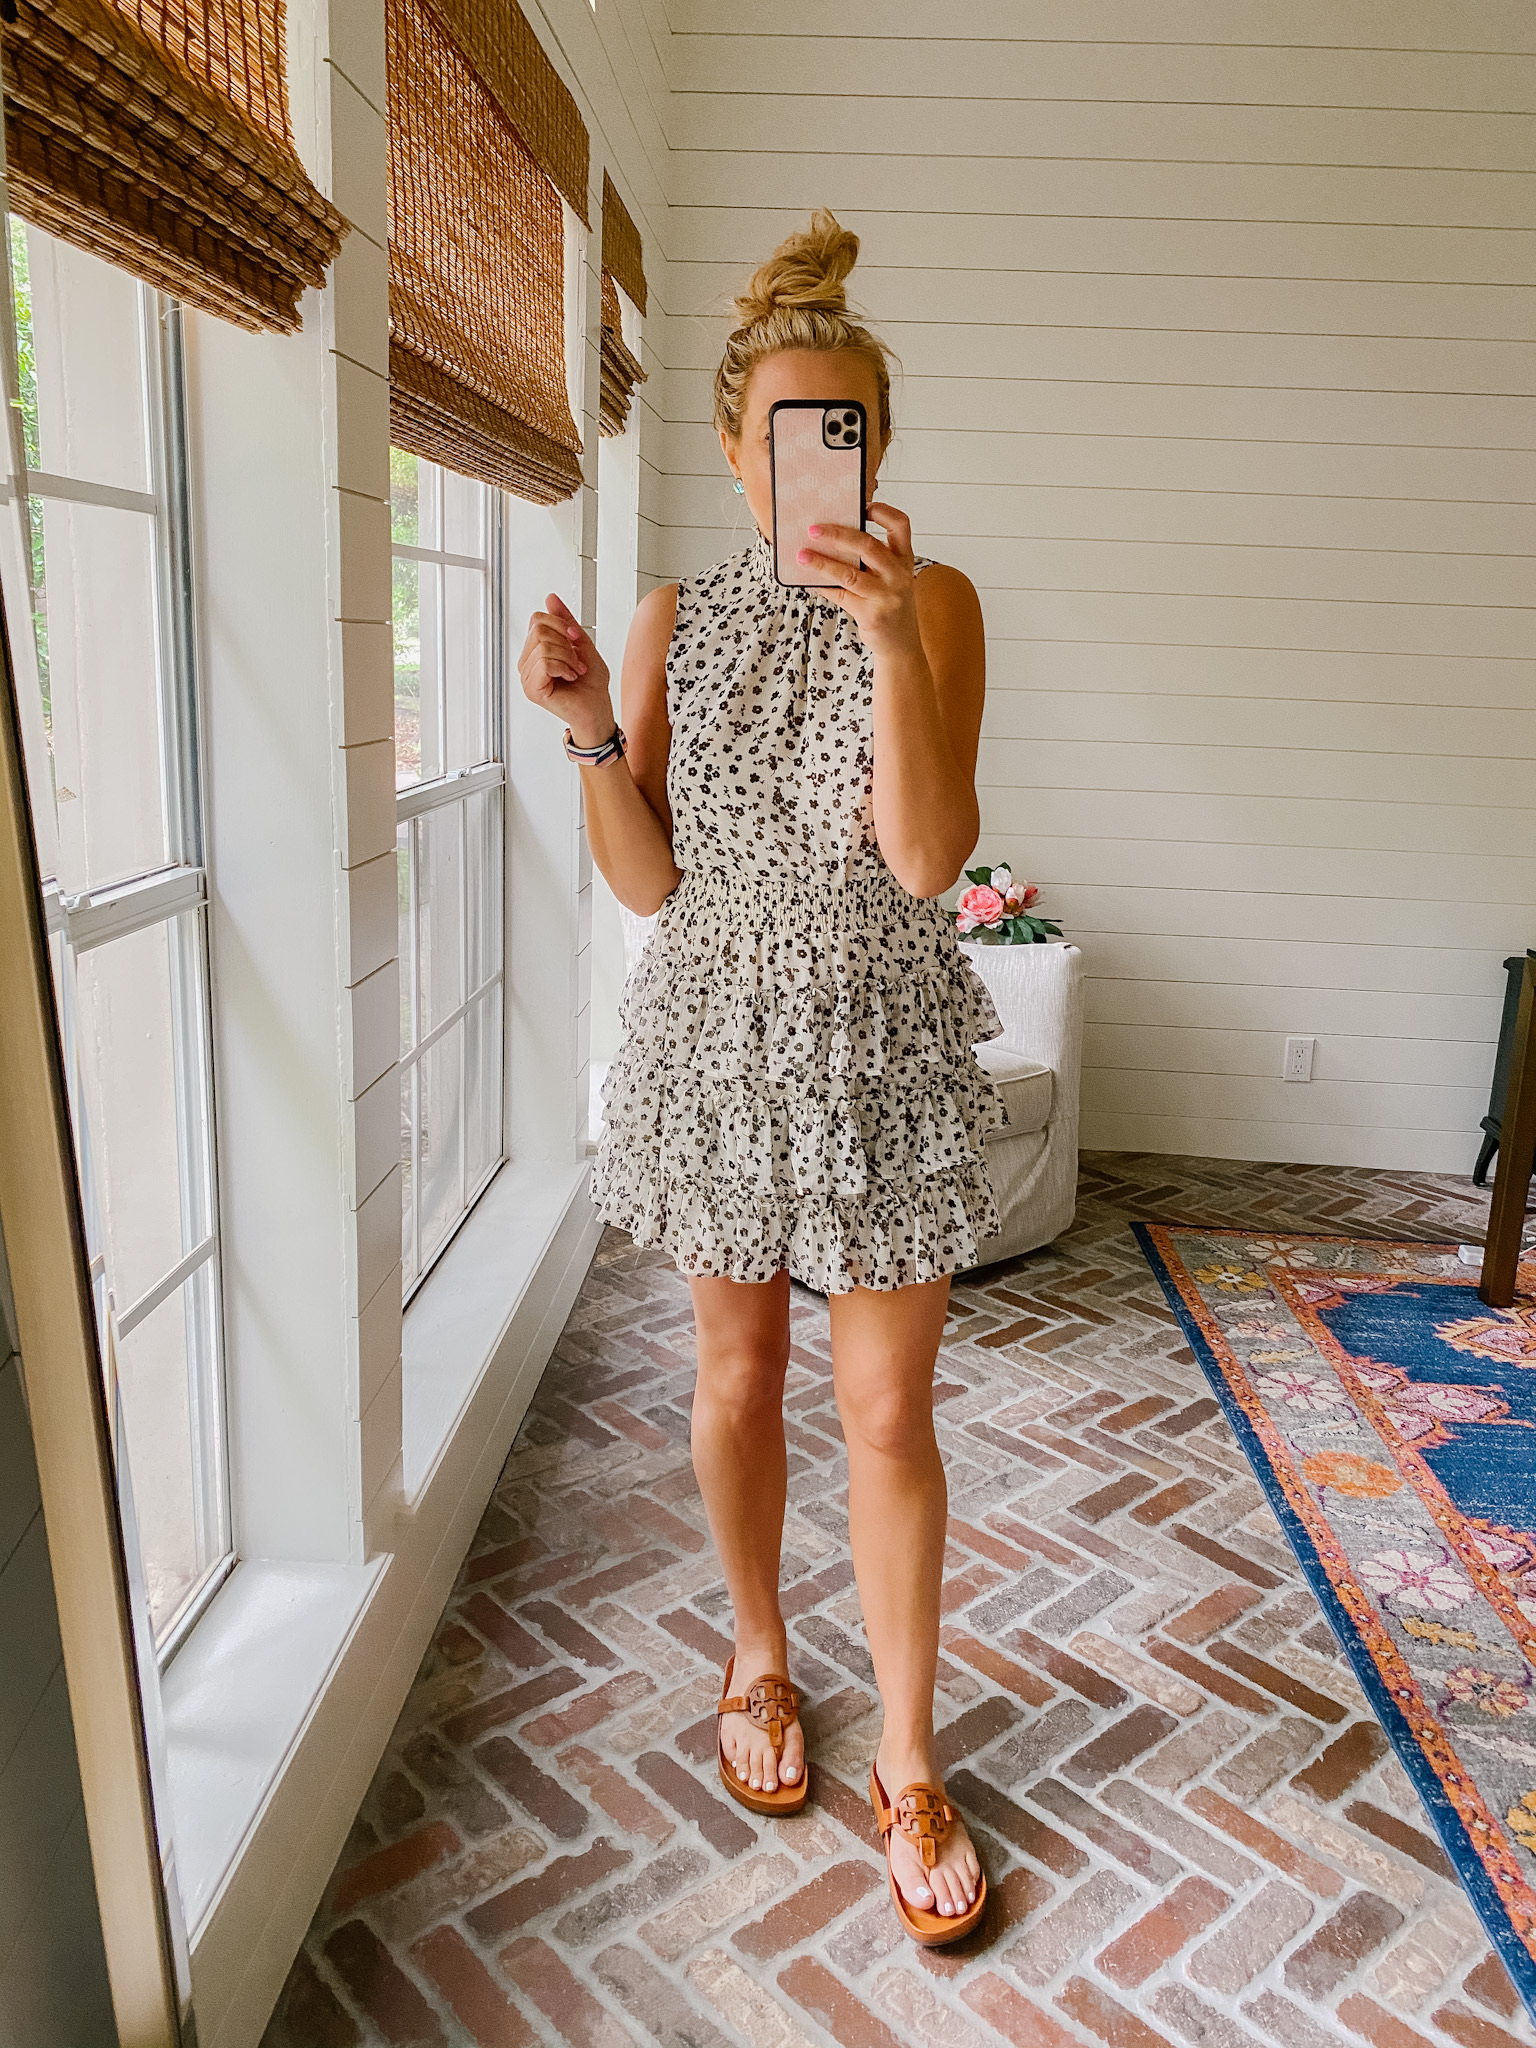 Express New Arrivals by popular Houston fashion blog, The House of Fancy: image of a woman wearing a Express sleeveless black and tan floral print ruffle tiered dress and brown slide sandals.